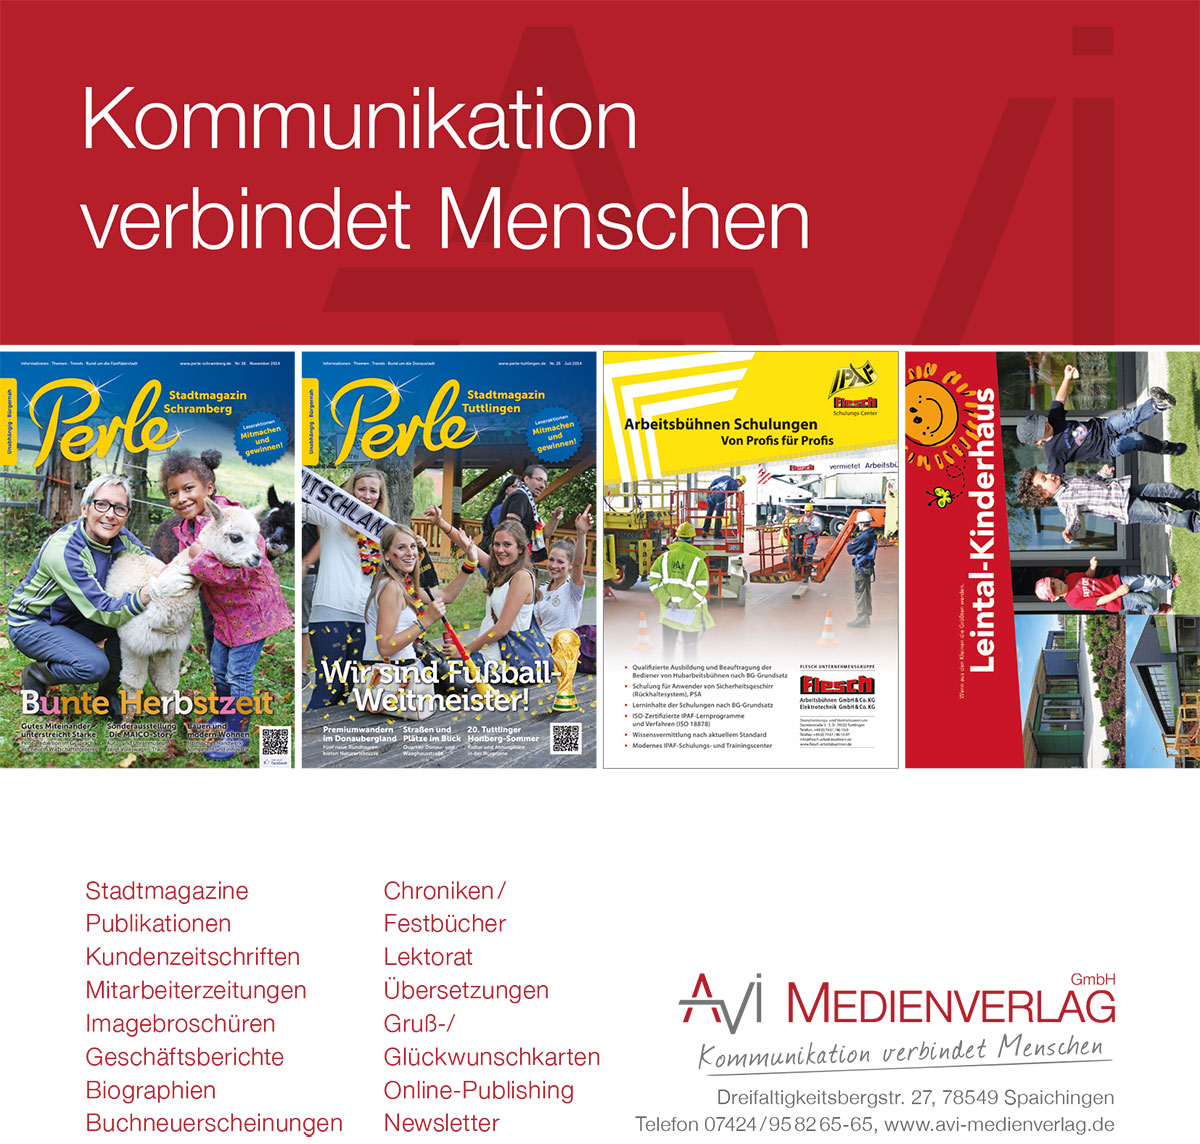 AVi Medienverlag GmbH